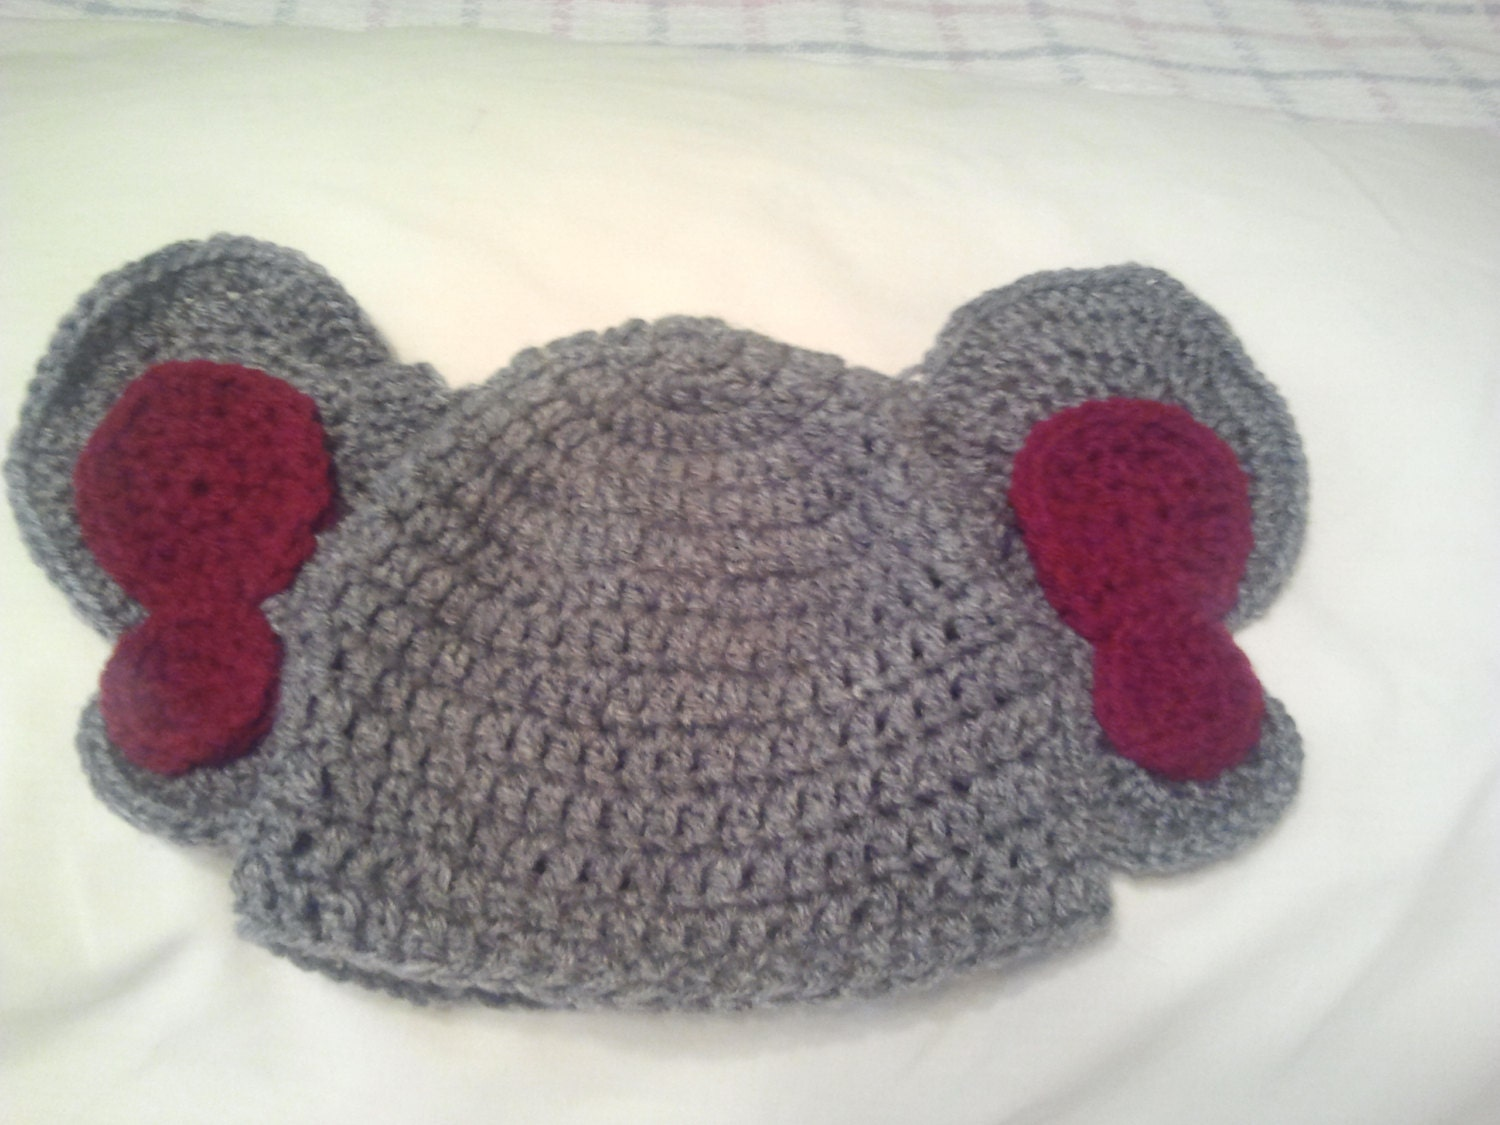 Crochet Pattern For Baby Elephant Hat : Crochet baby Alabama elephant hat toddler by ...